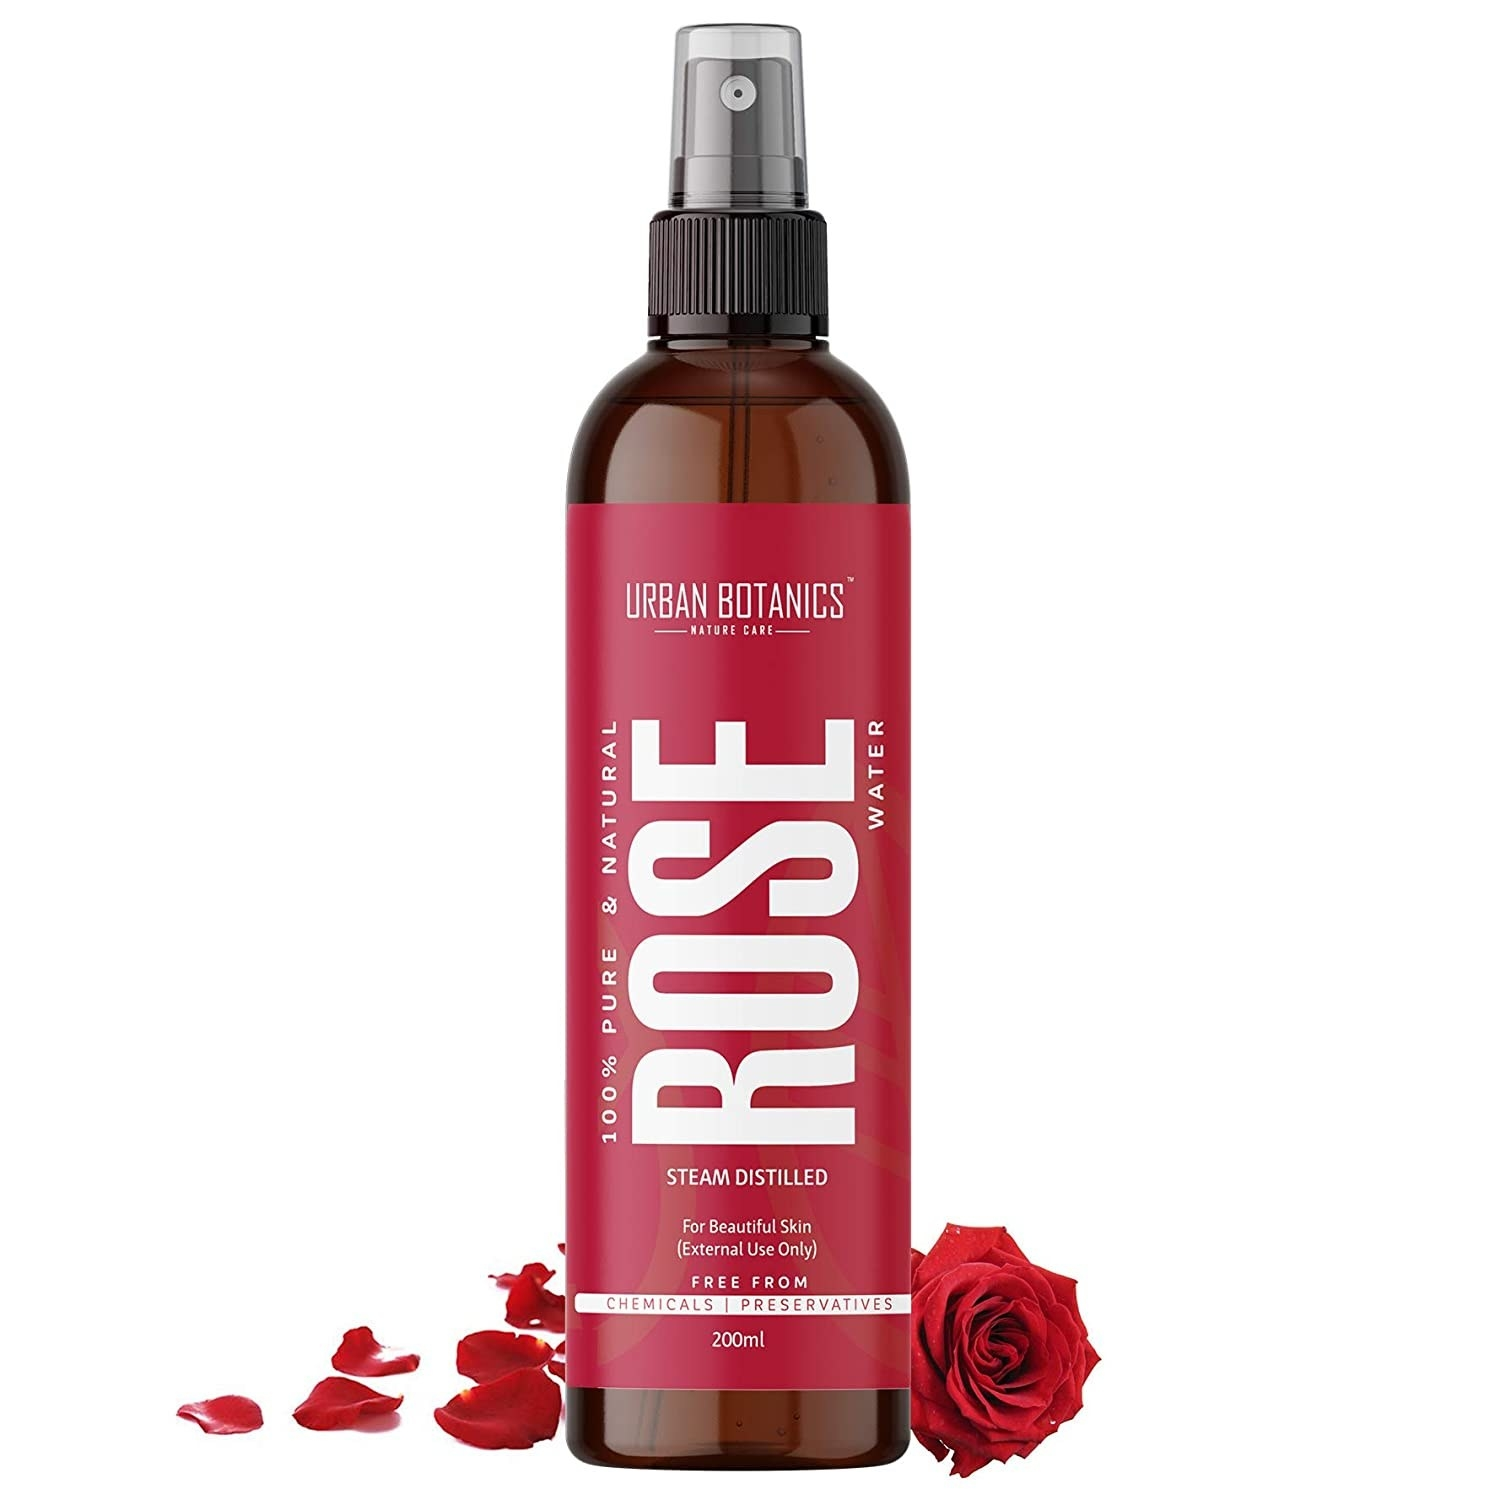 Bottle of the rose water spray